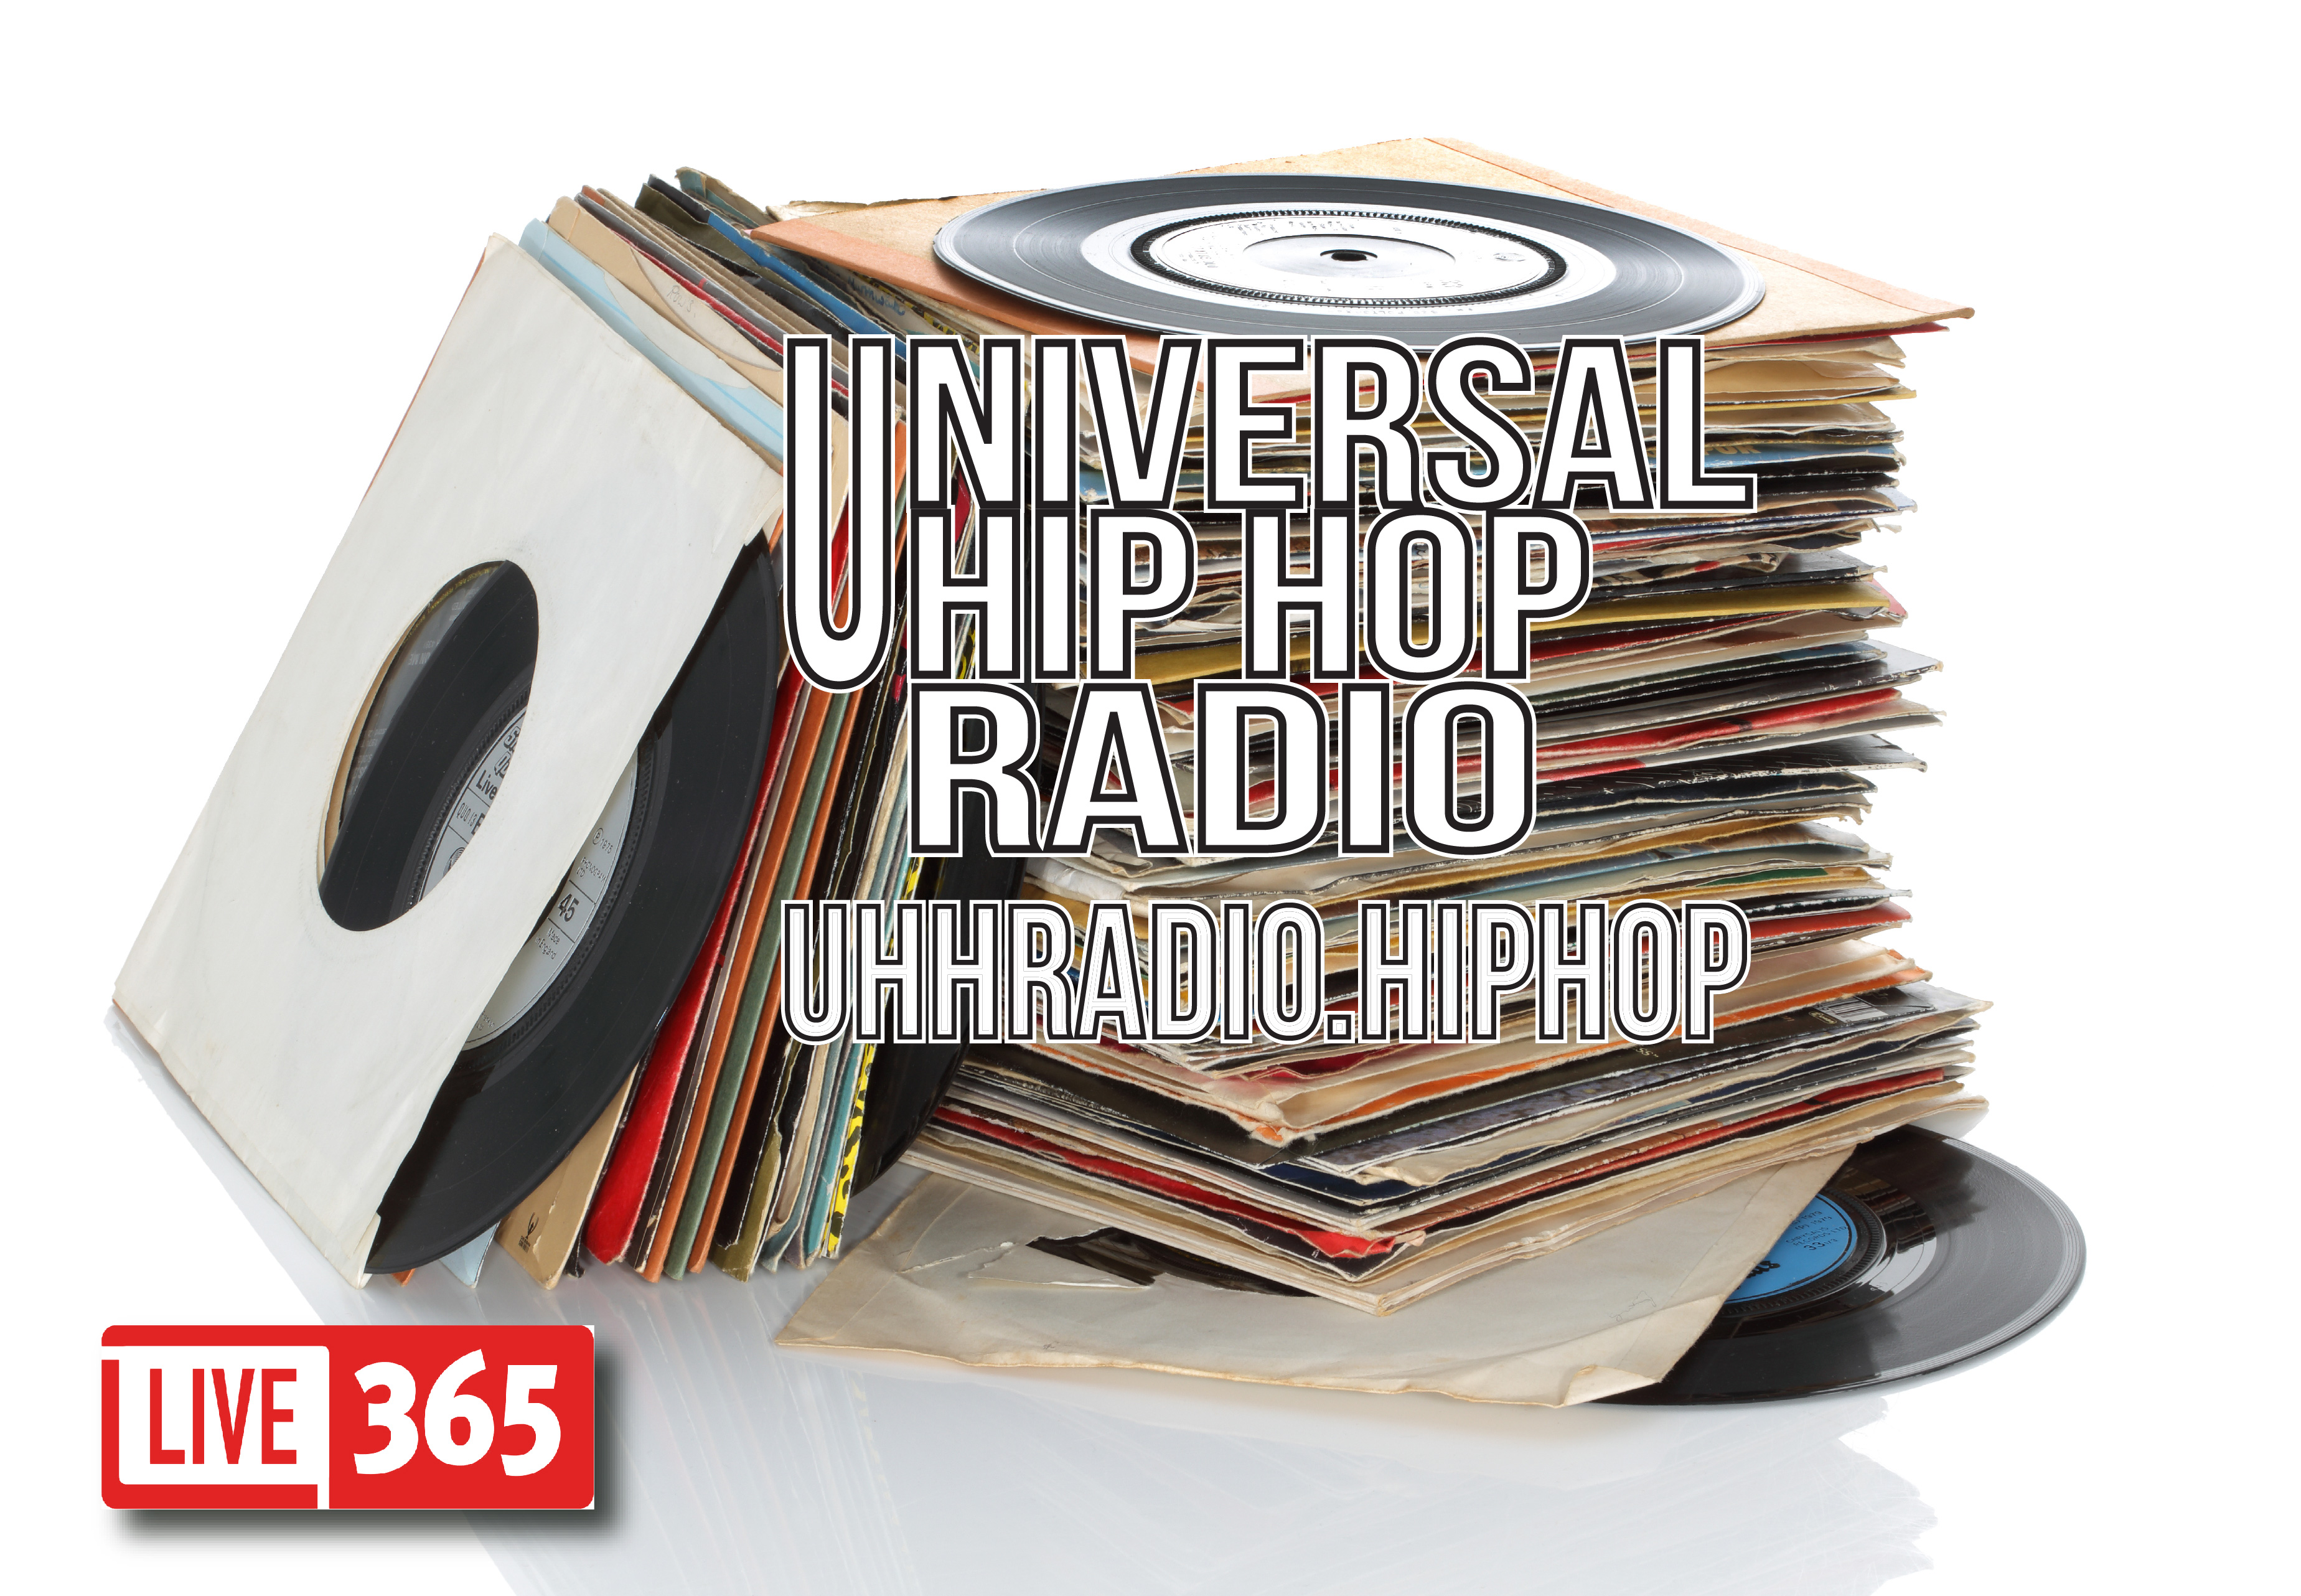 Art for Catch A Groove Uhh Radio by Untitled Artist